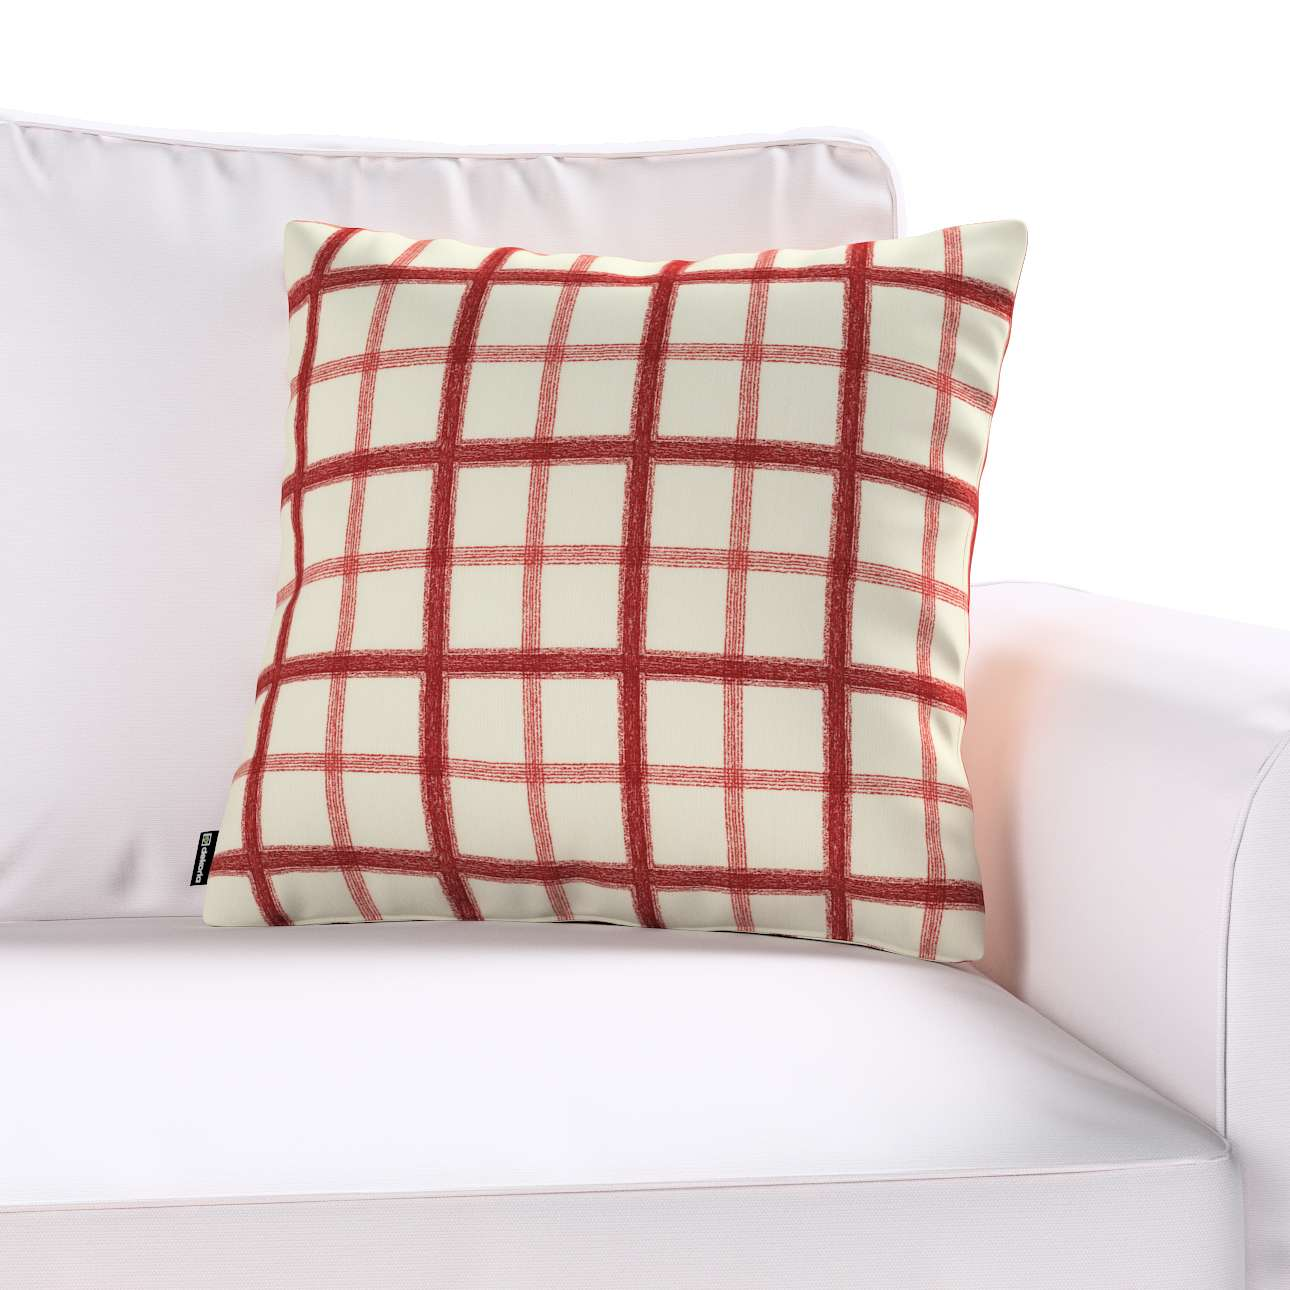 Kinga cushion cover in collection Avinon, fabric: 131-15